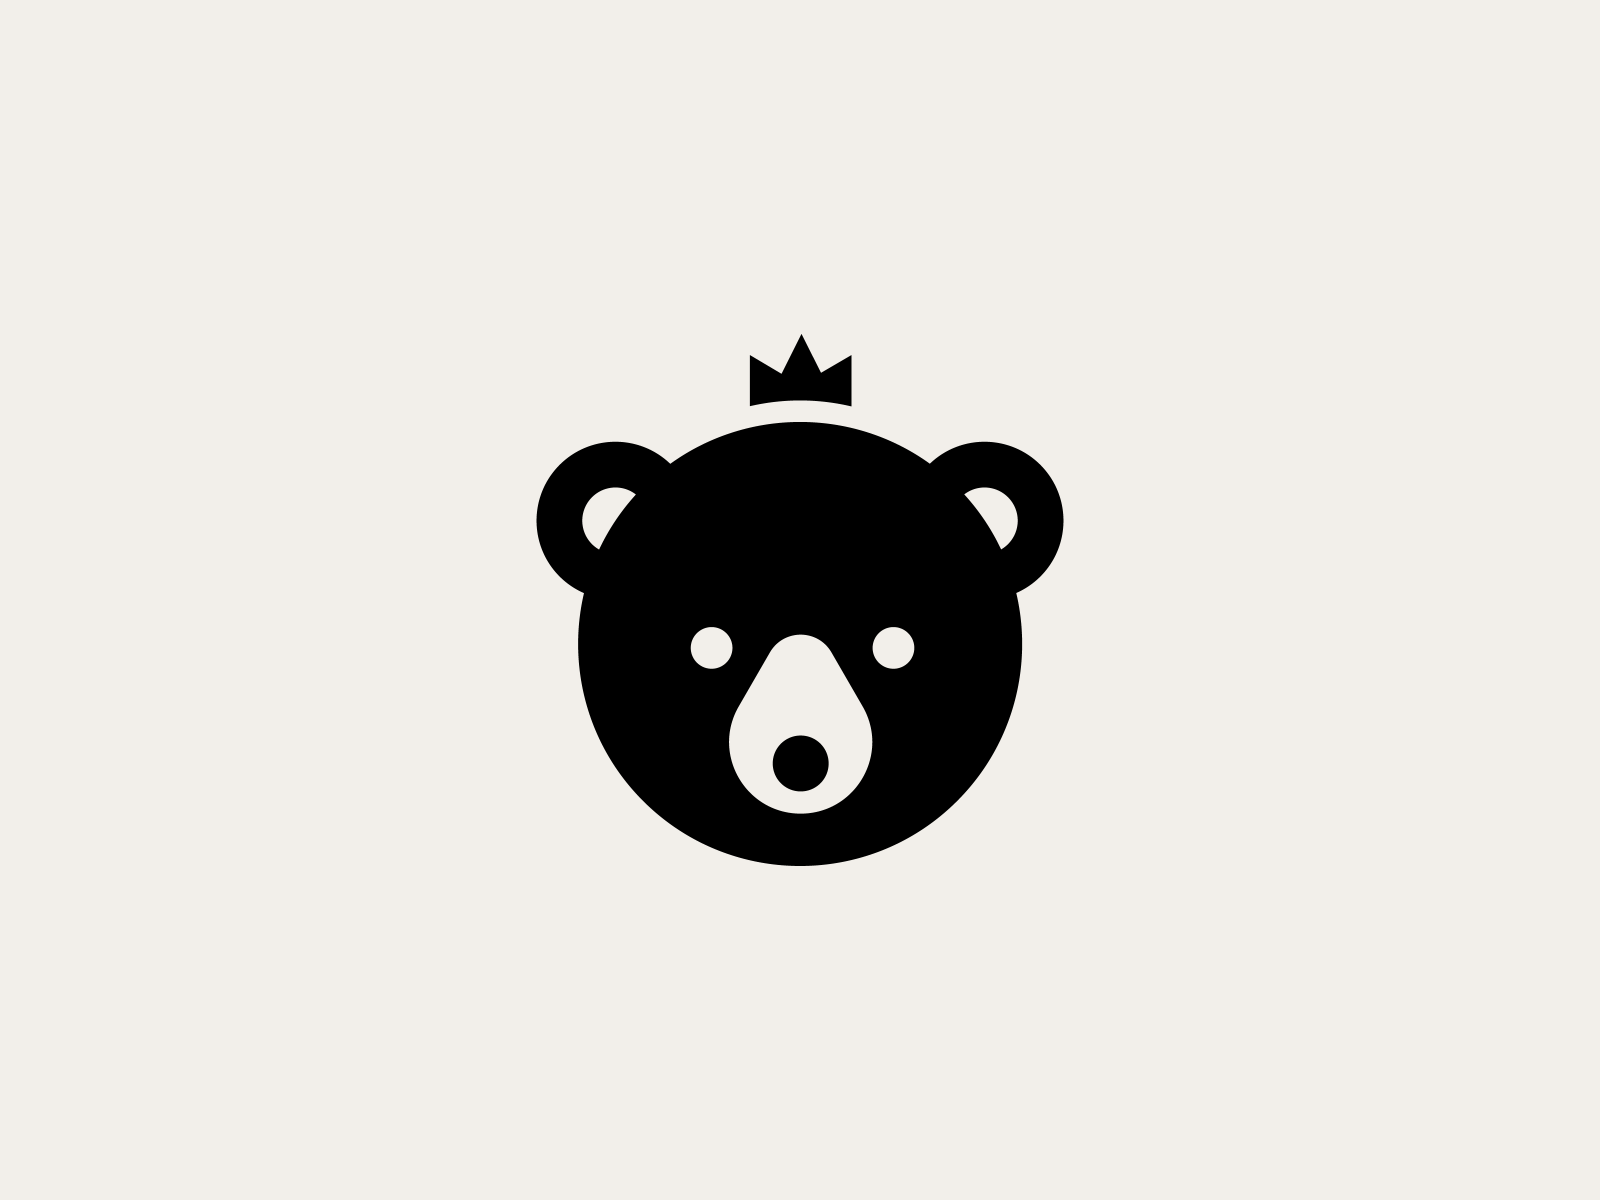 King of the Bears